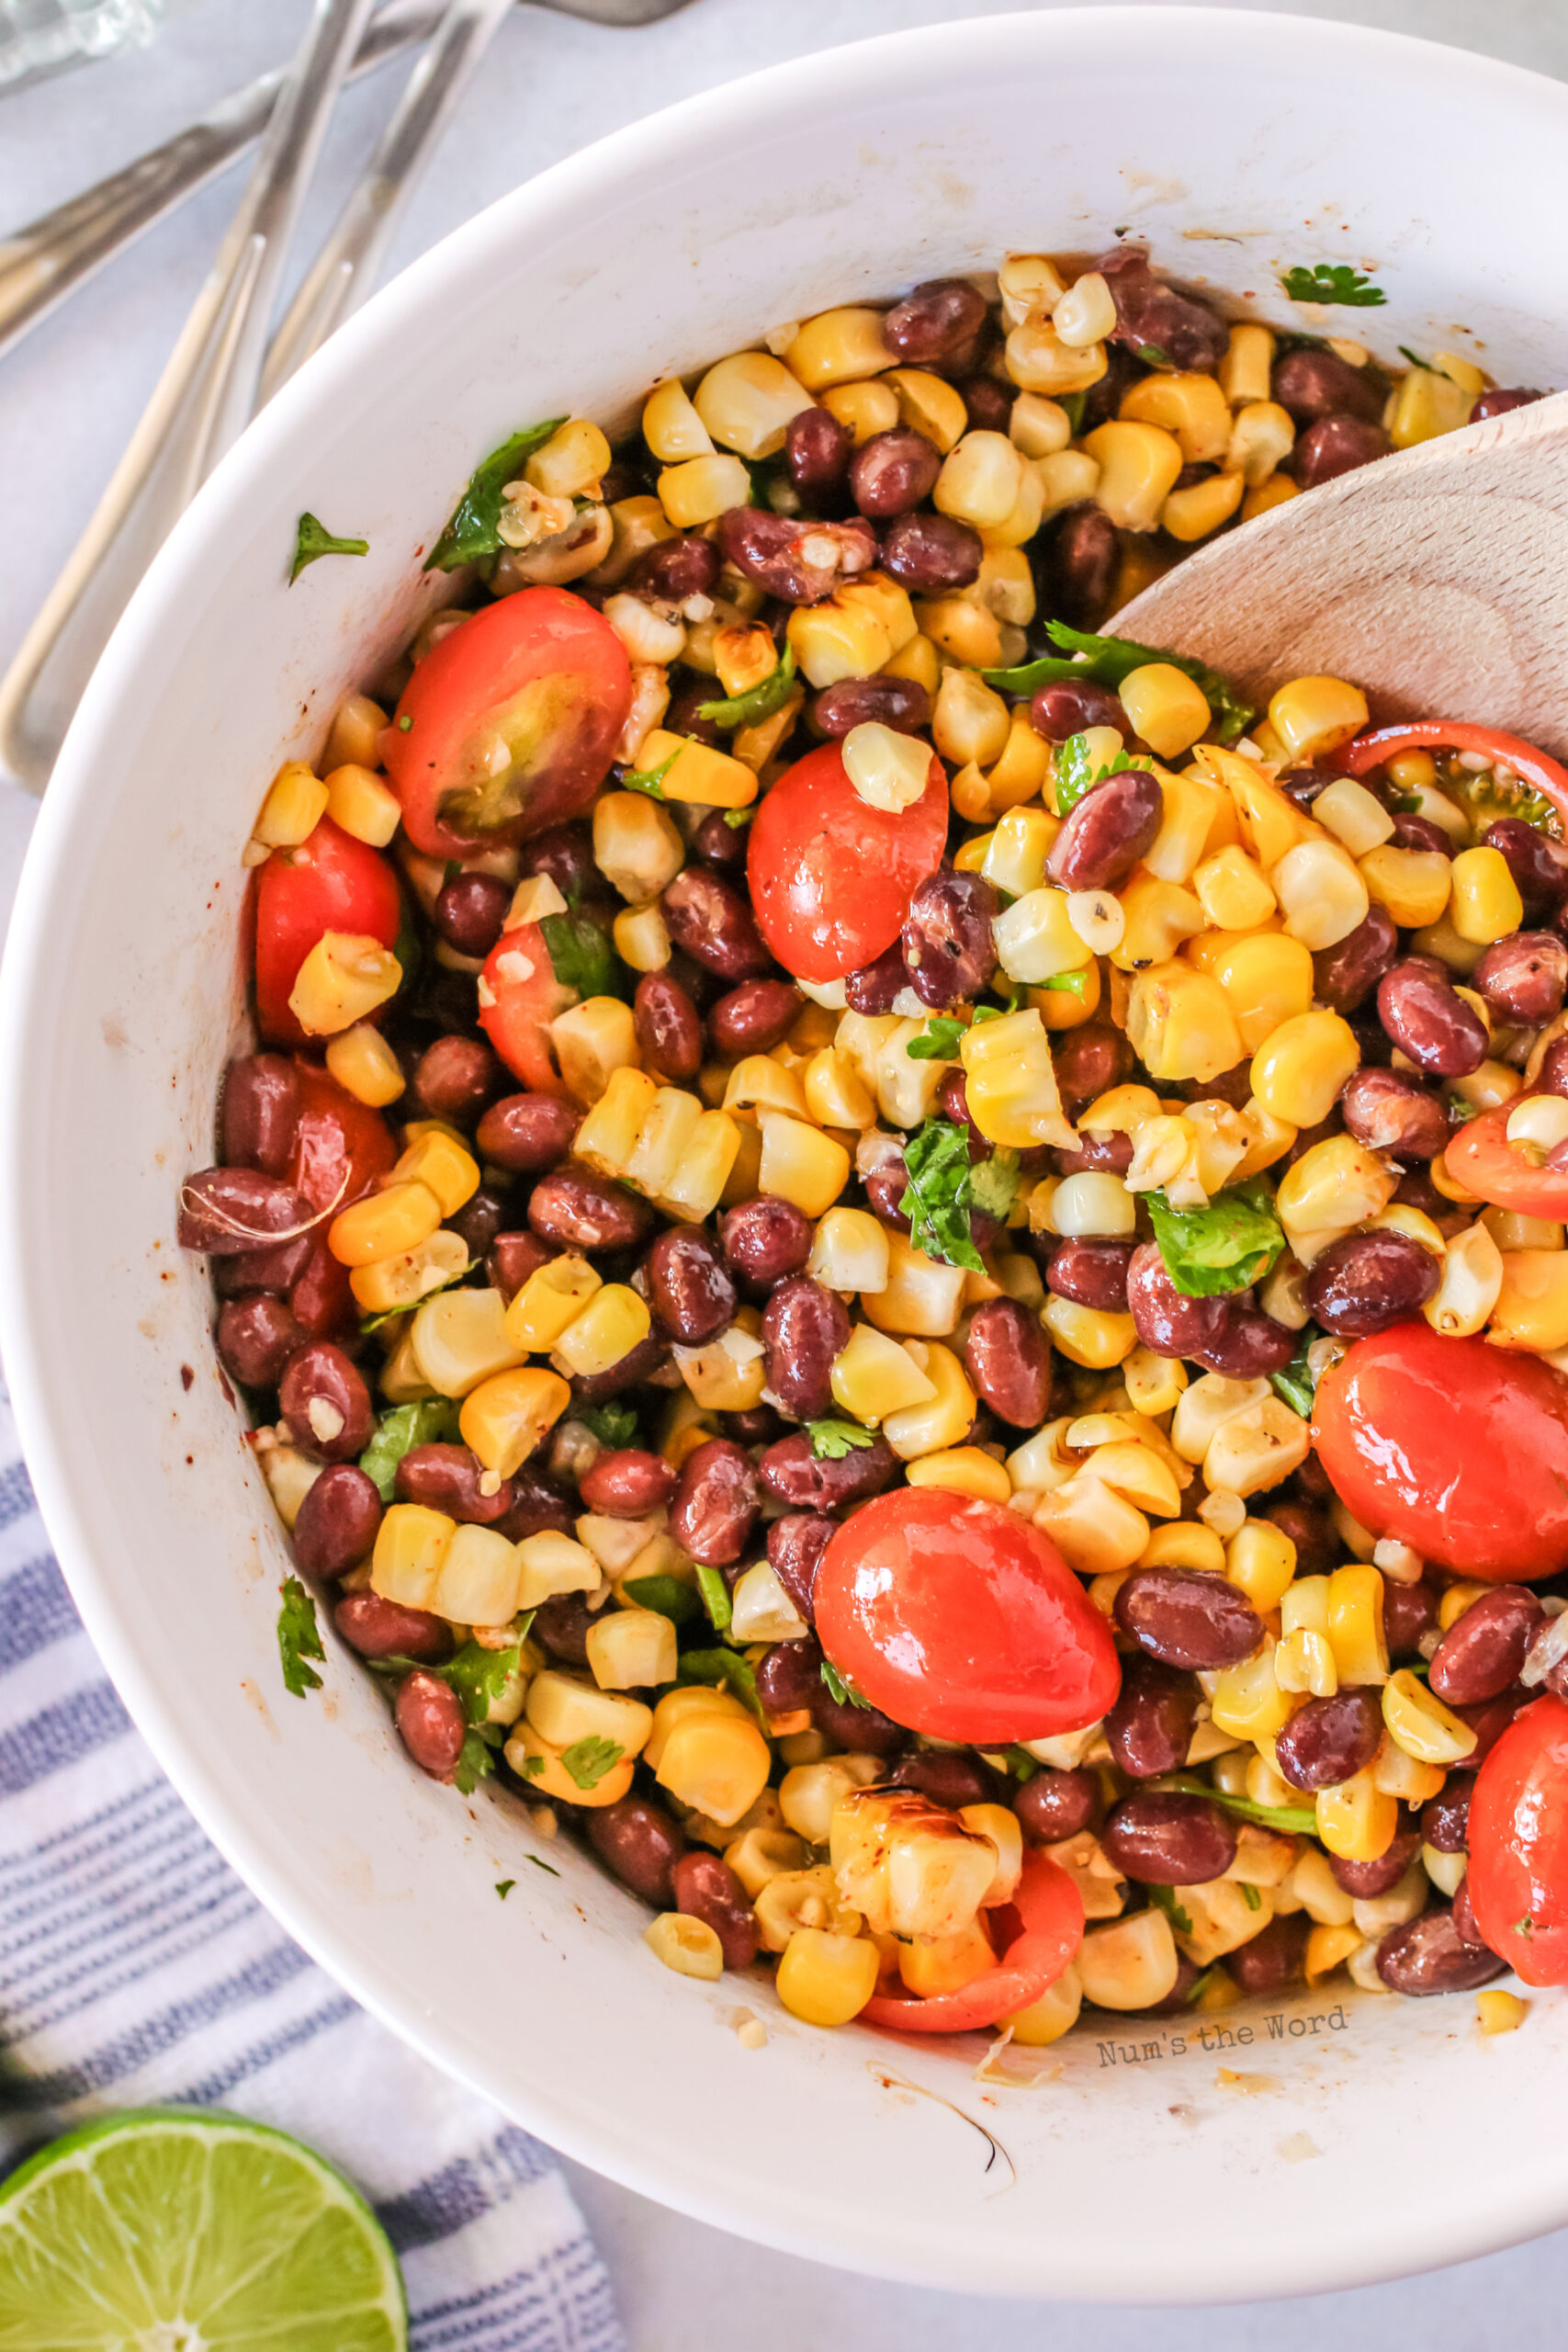 grilled corn salad with dressing in bowl, zoomed in photo.